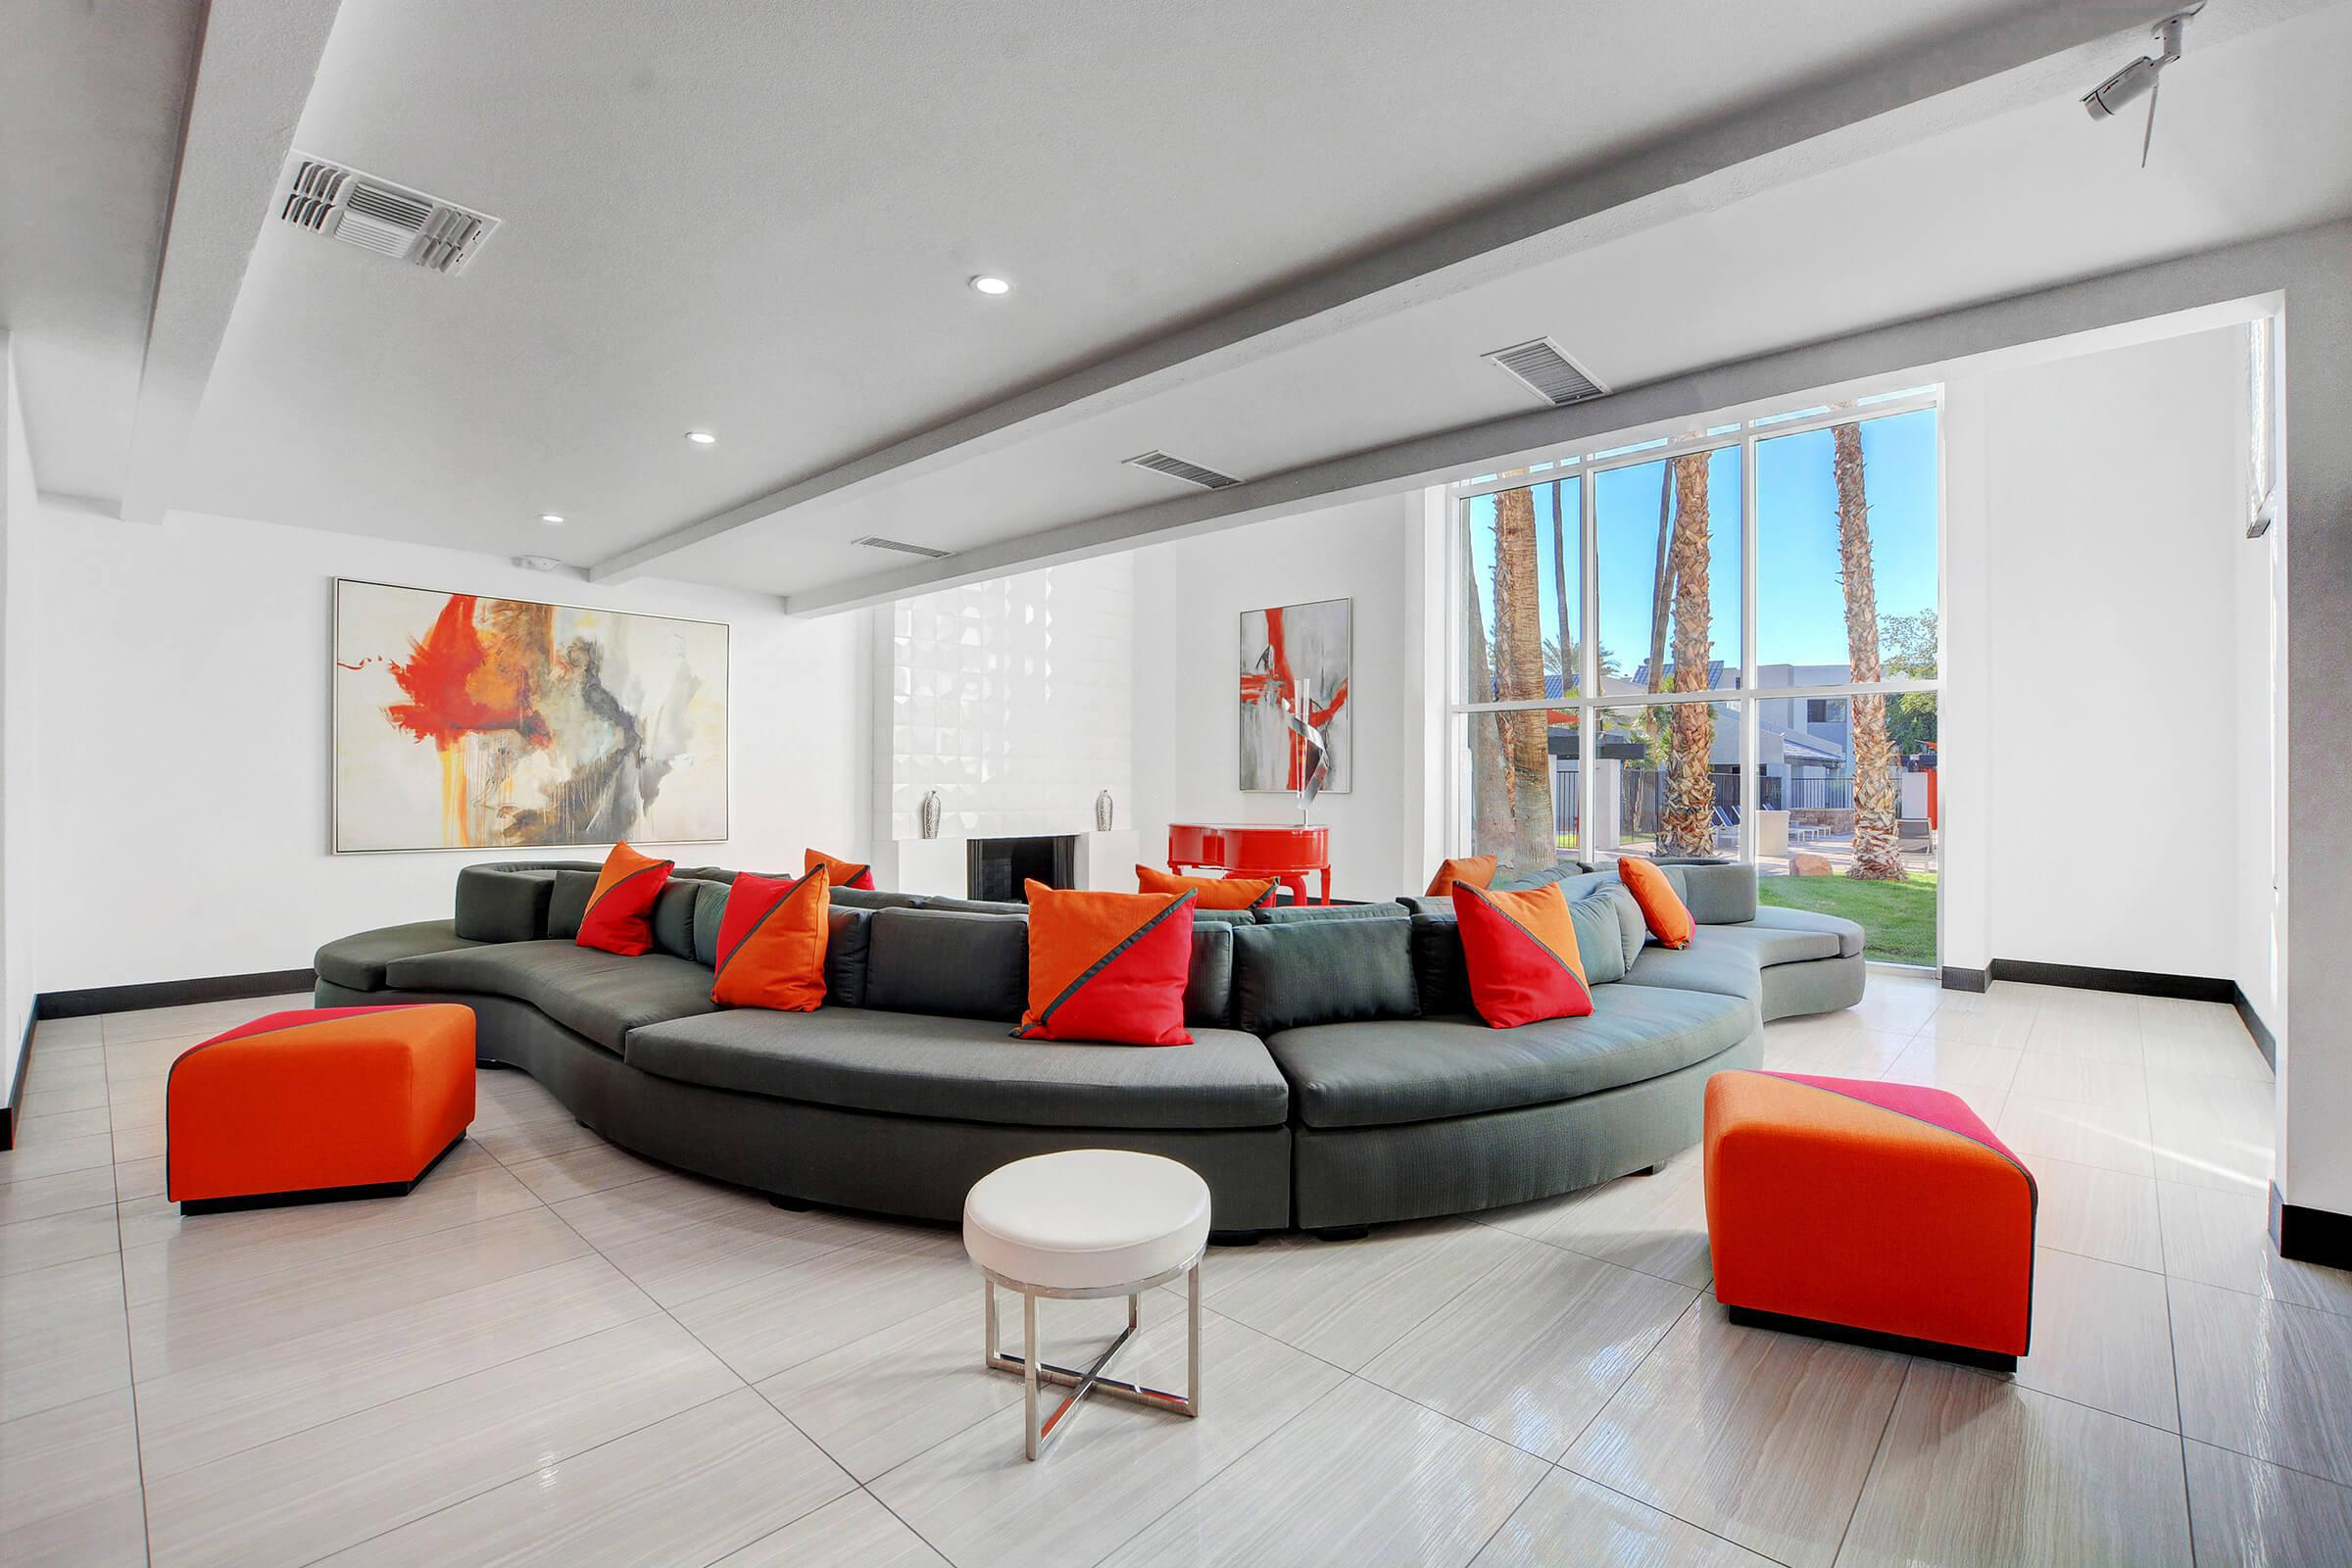 a living area with red and white furniture